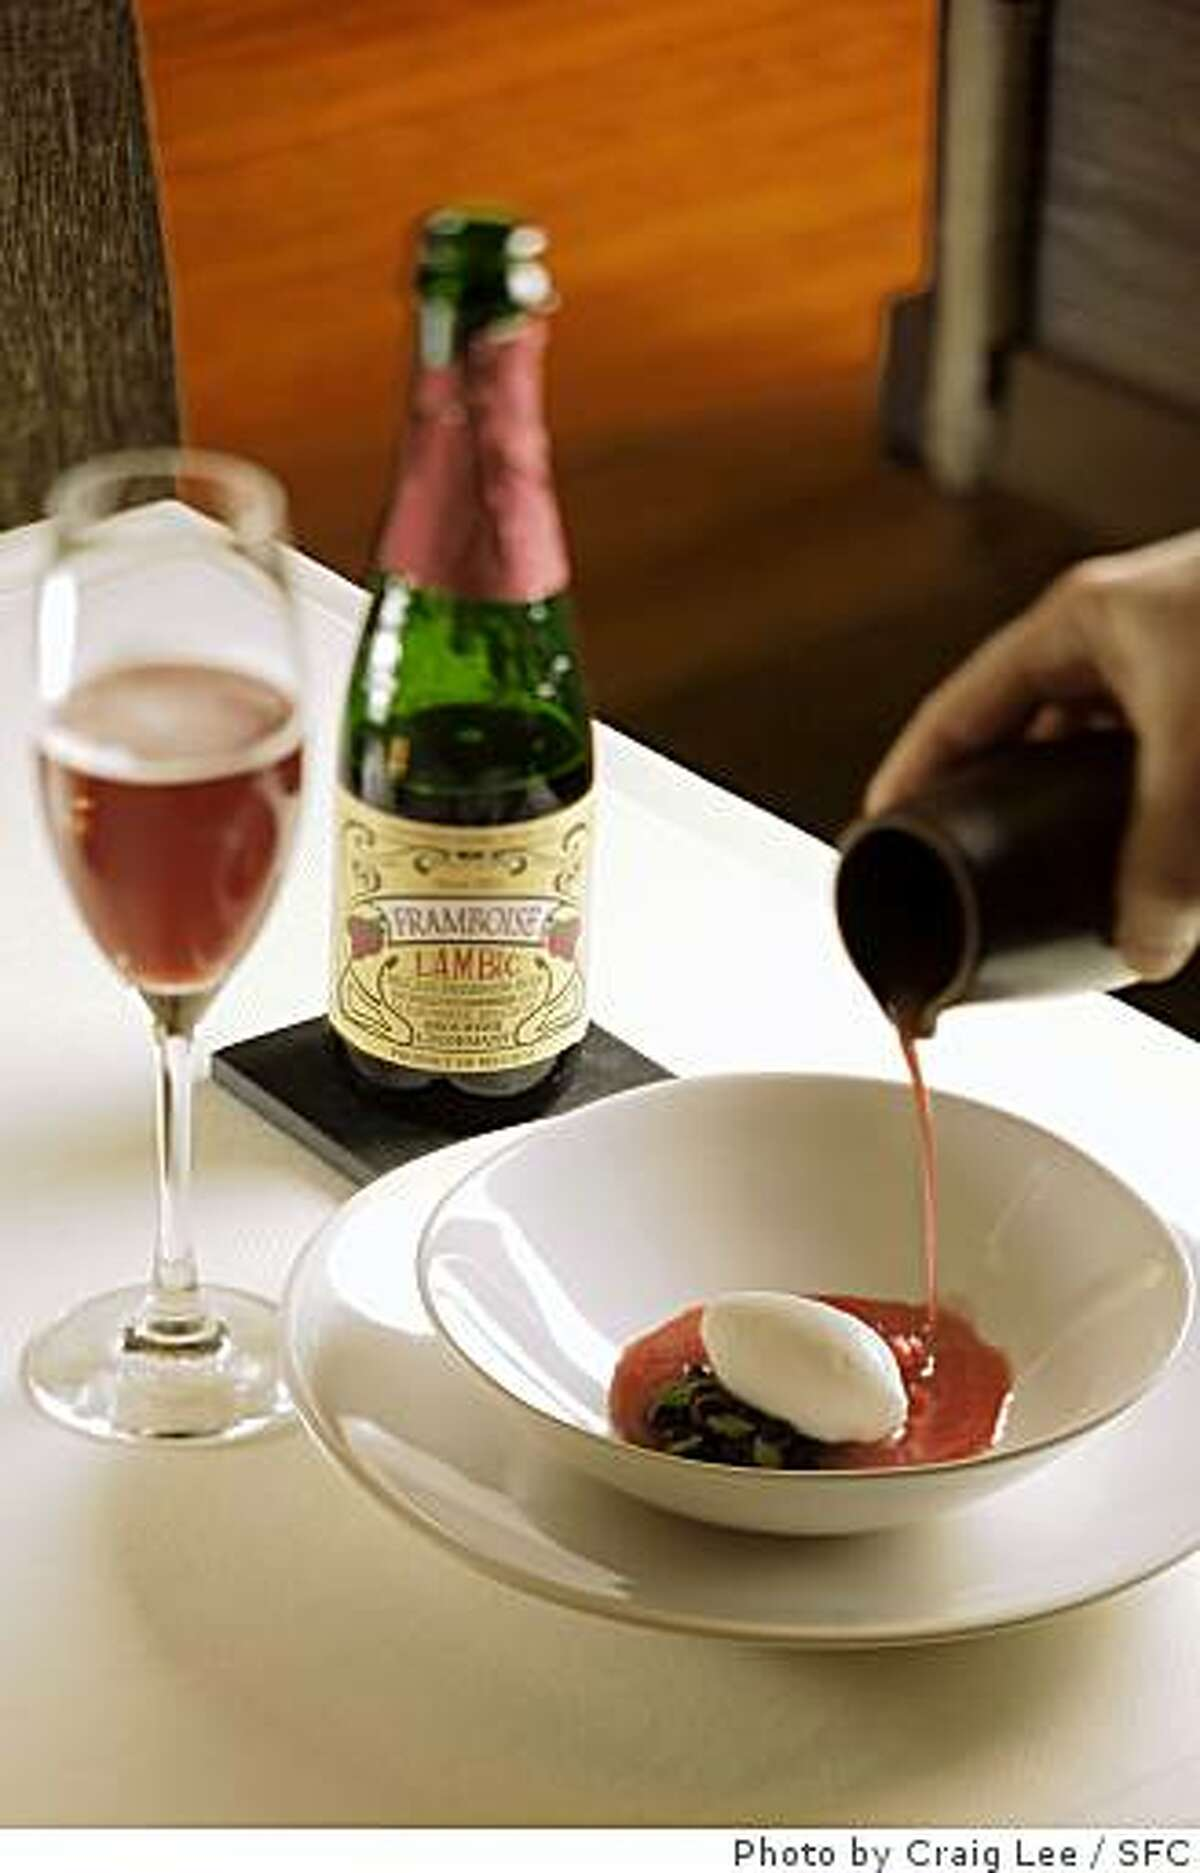 Lindemans Lambic Framboise paired with chilled strawberry-watermelon soup with makrut lime, black tapioca pearls and long pepper ice cream made by pastry chef Carlos Salgado at Coi restaurant in San Francisco on May 8, 2008.Photo by Craig Lee / The San Francisco Chronicle